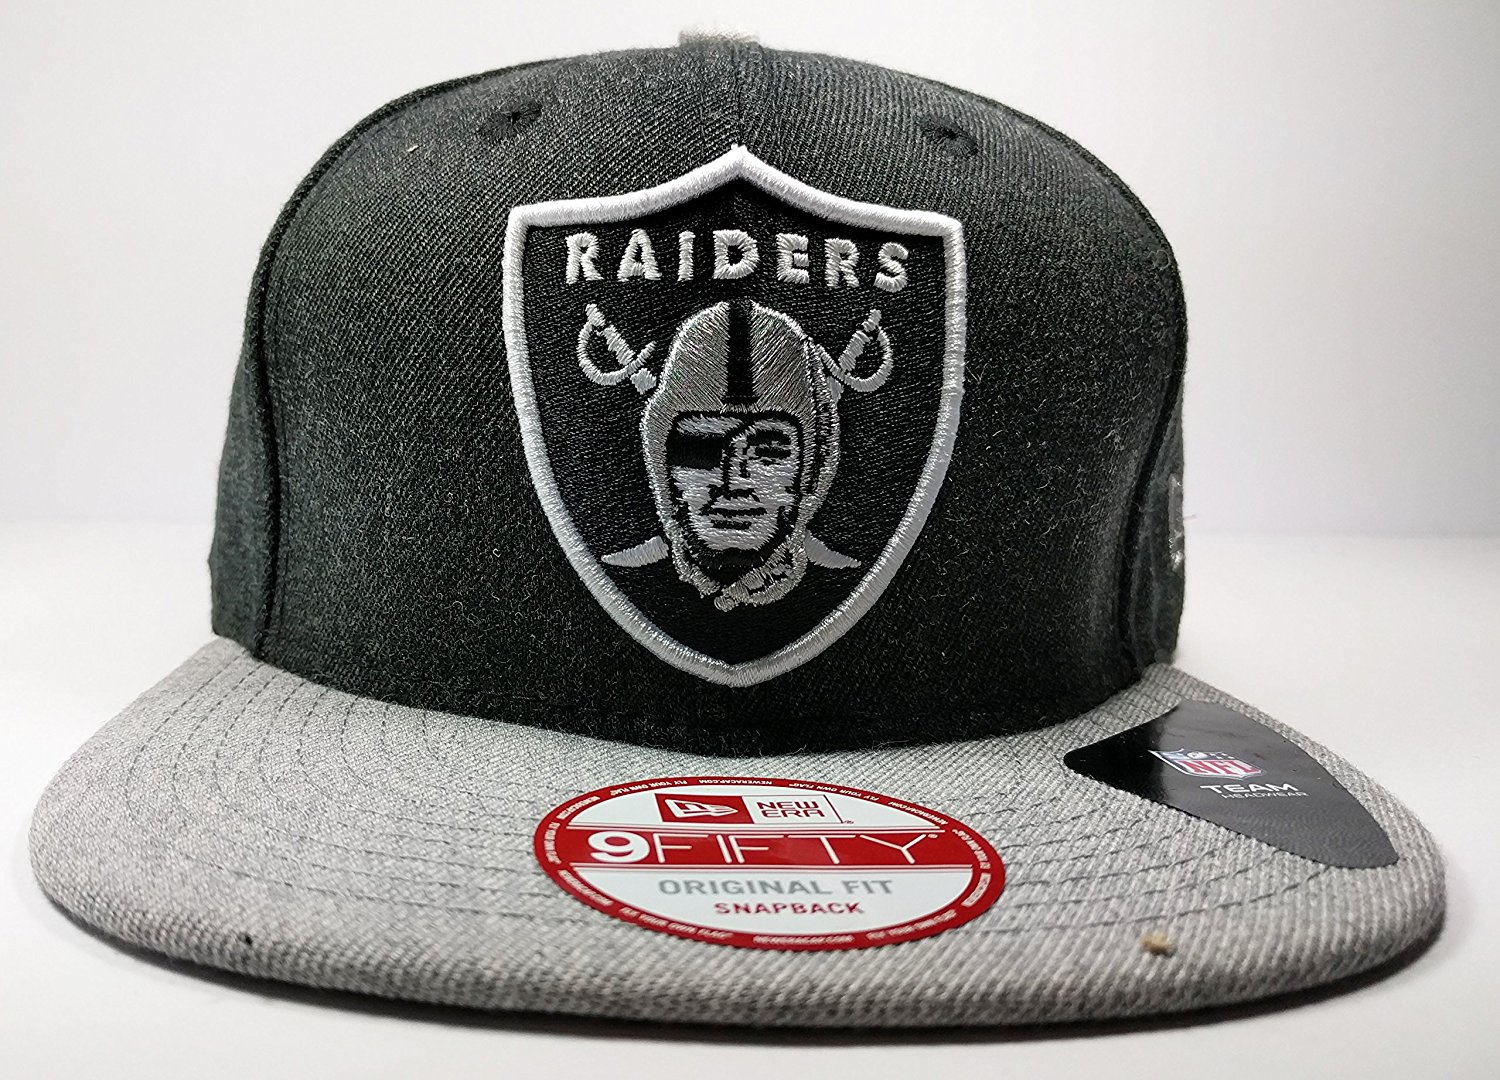 b004dace2f5841 ... Adjustable plastic snap strap Imported Officially licensed Raider...  Get Quotations · Oakland Raiders New Era Speed Up Snapback Cap Hat Grey  Black